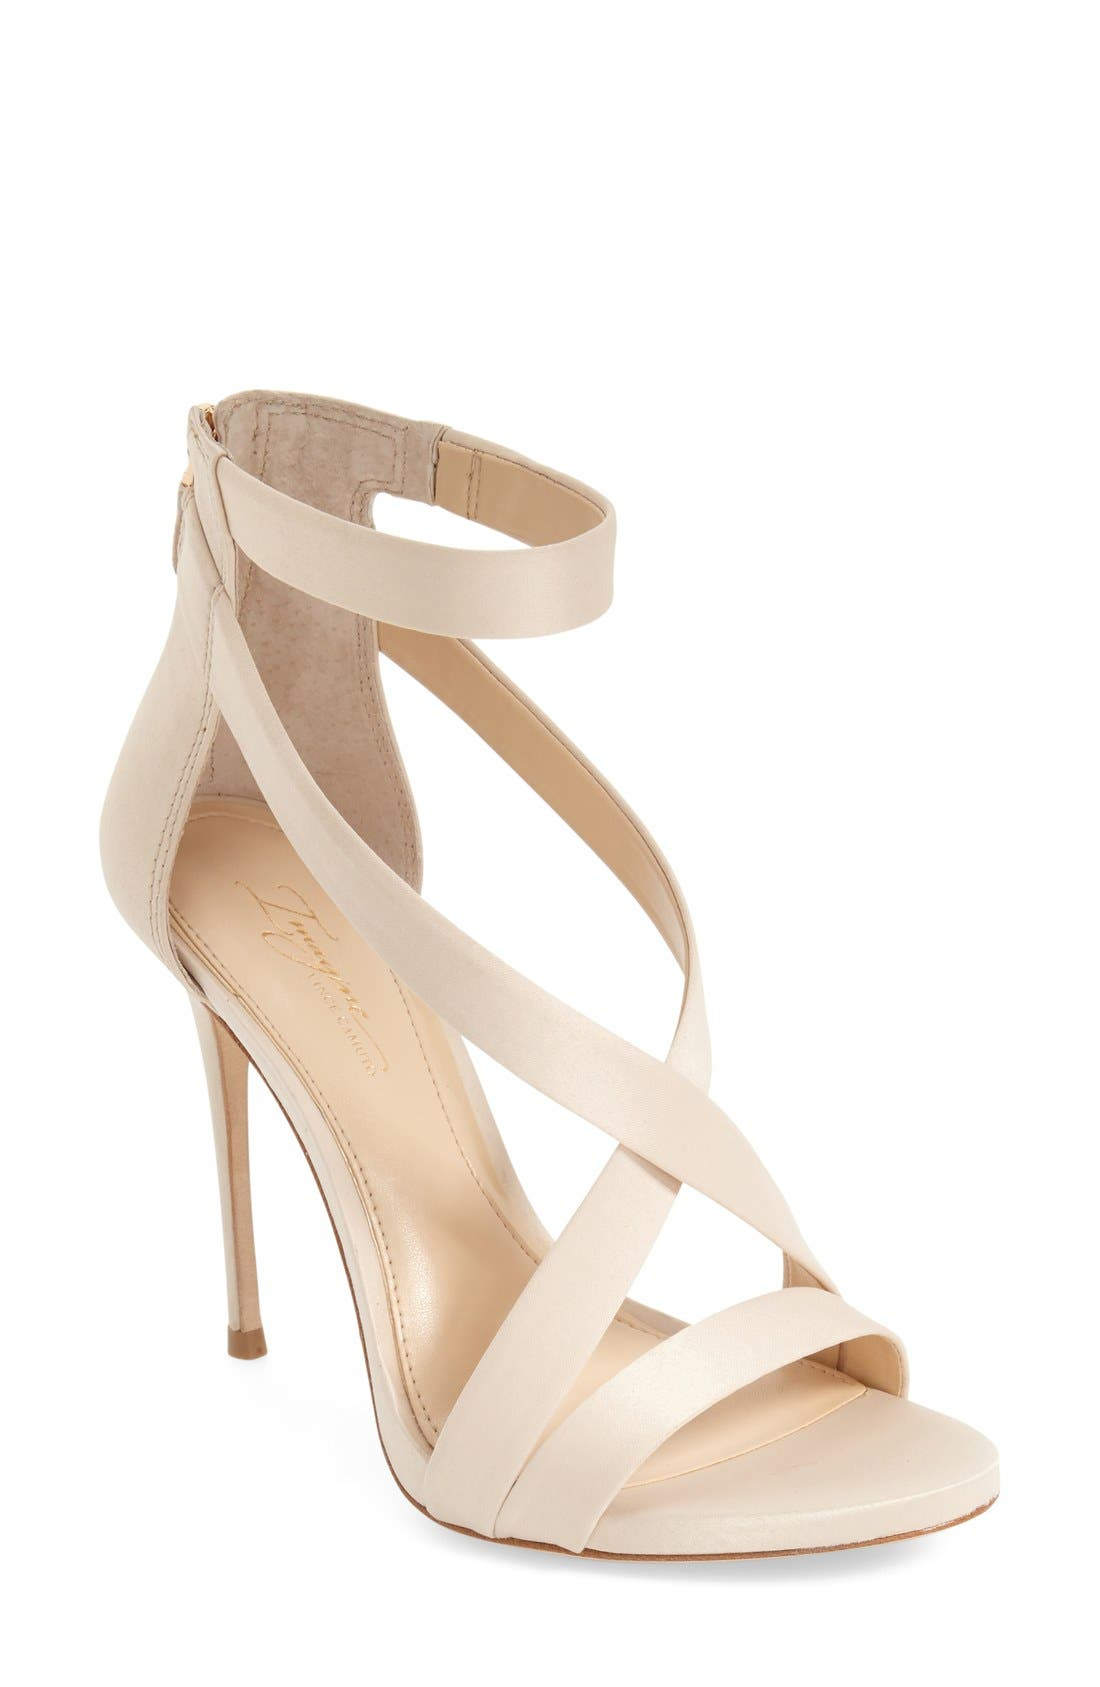 IMAGINE BY VINCE CAMUTO Imagine Vince Camuto 'Devin' Sandal, Main, color, LIGHT SAND